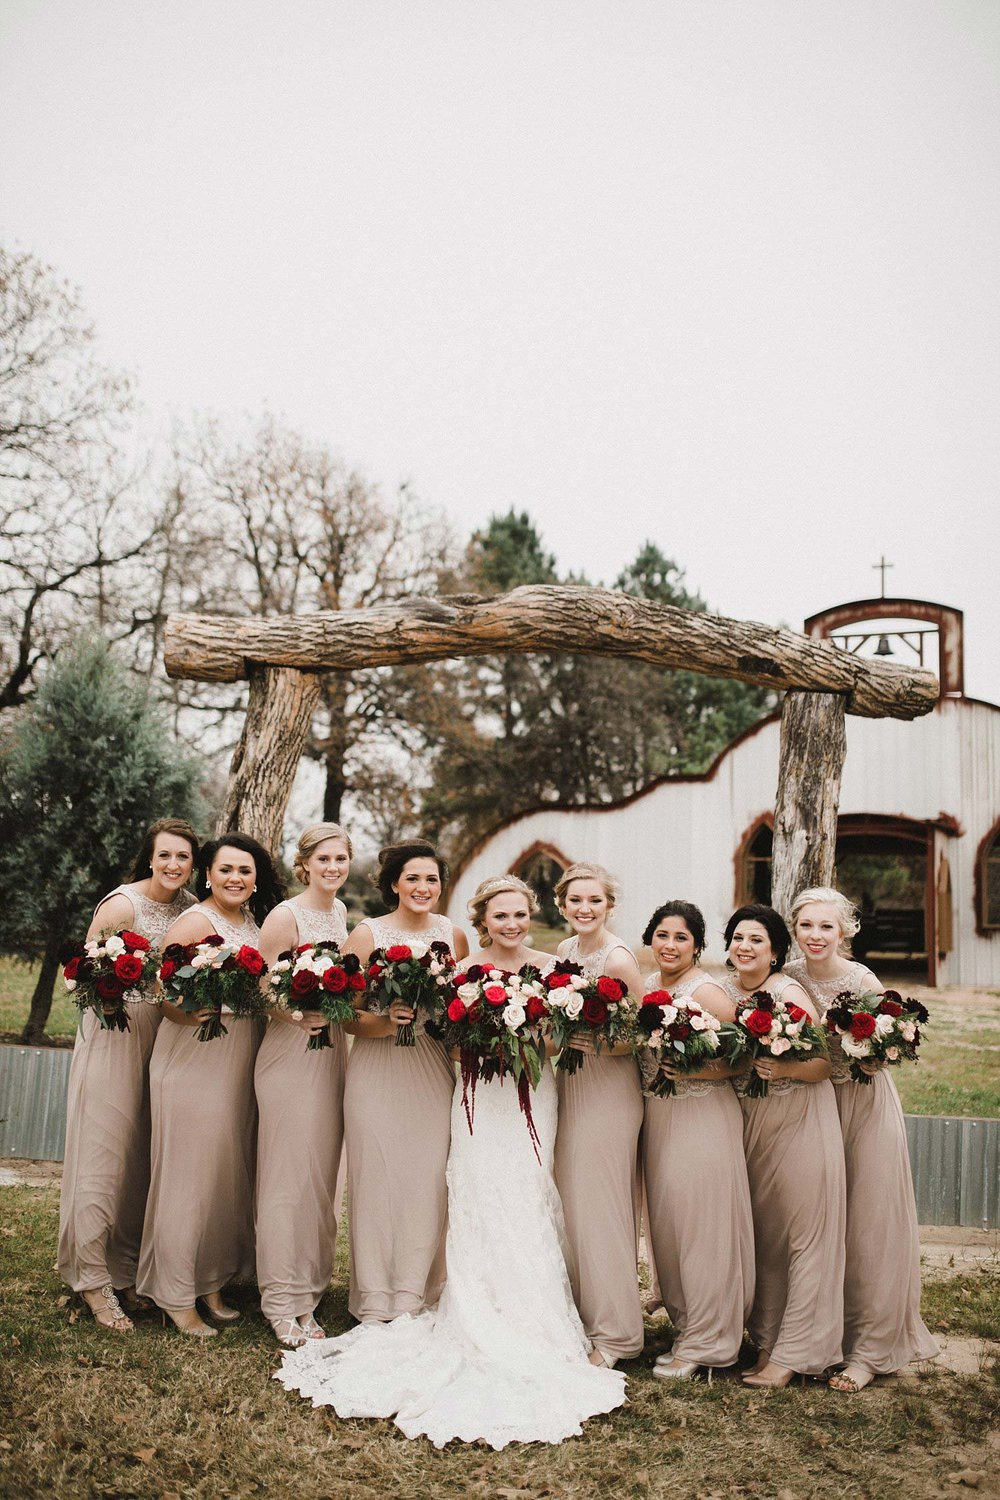 Hollow Hill Farm Event Center Wedding taupe bridesmaid dresses with white and red bouquets